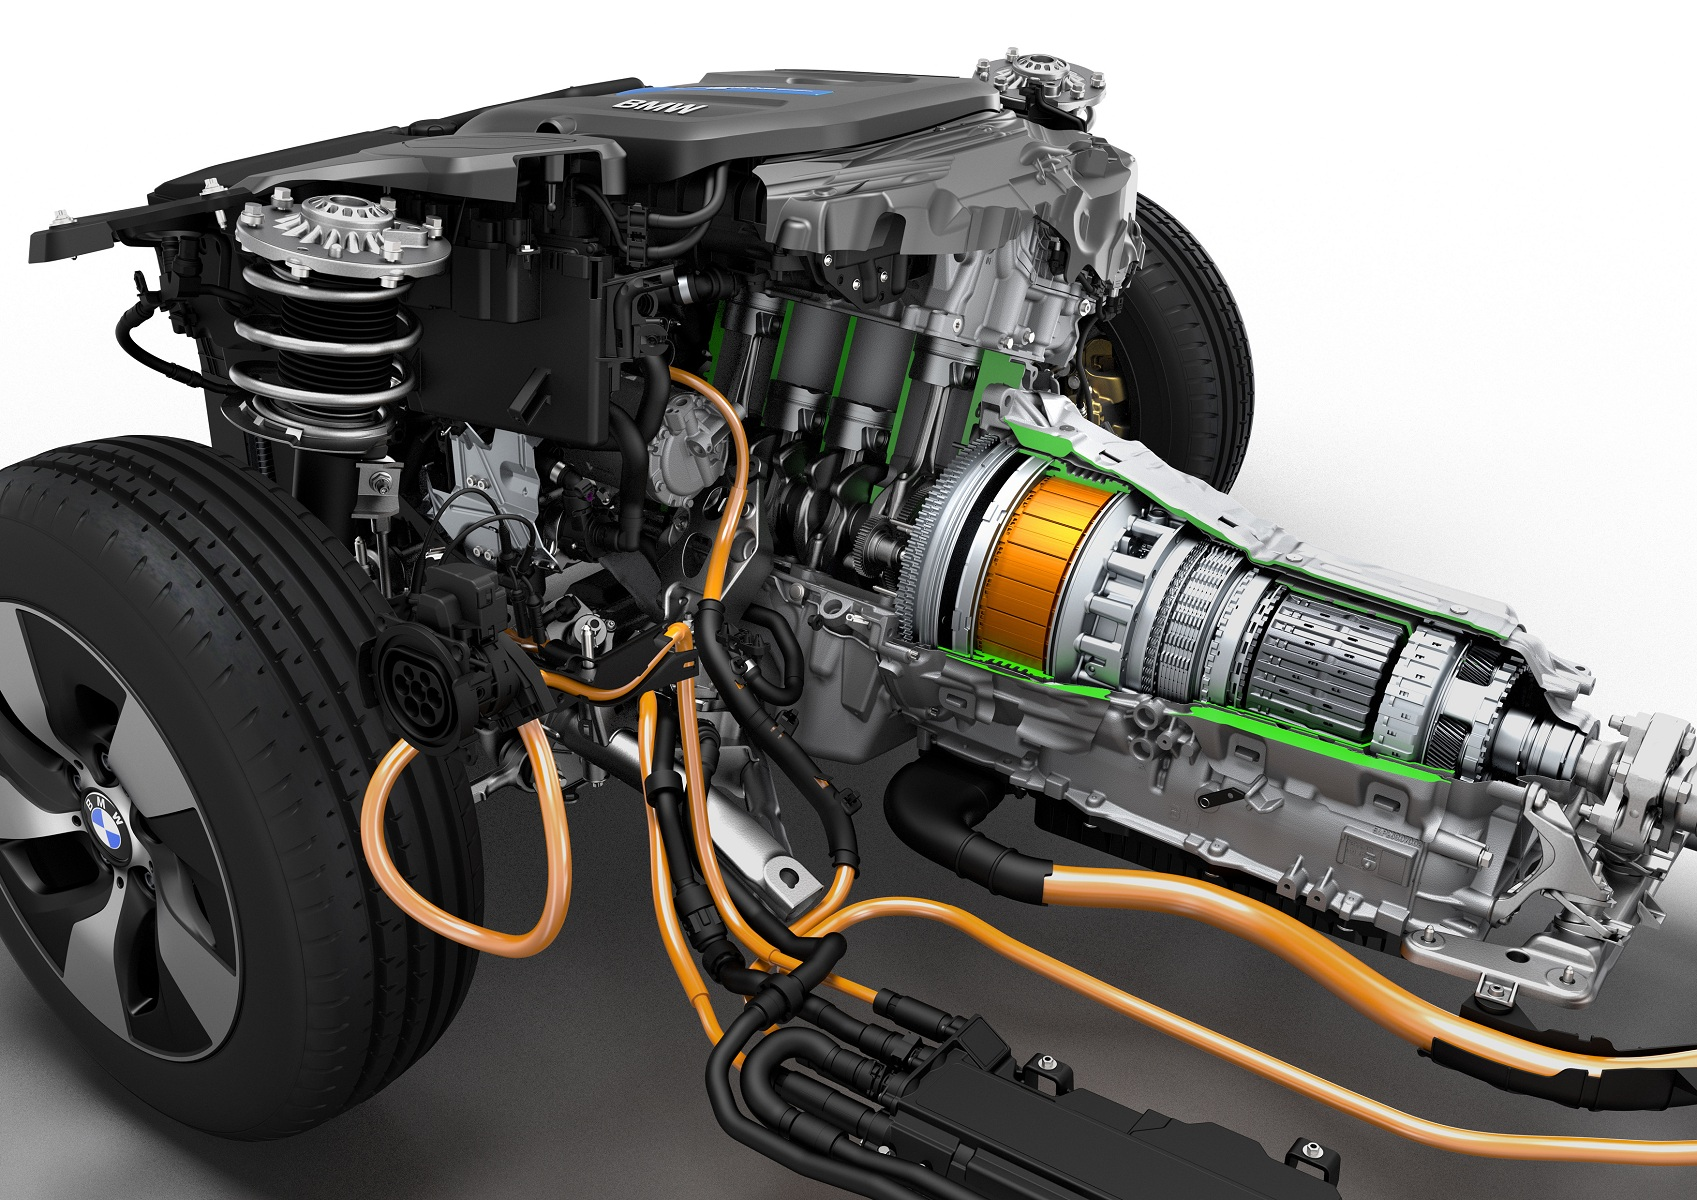 Internal combustion engine, electric motor and transmission